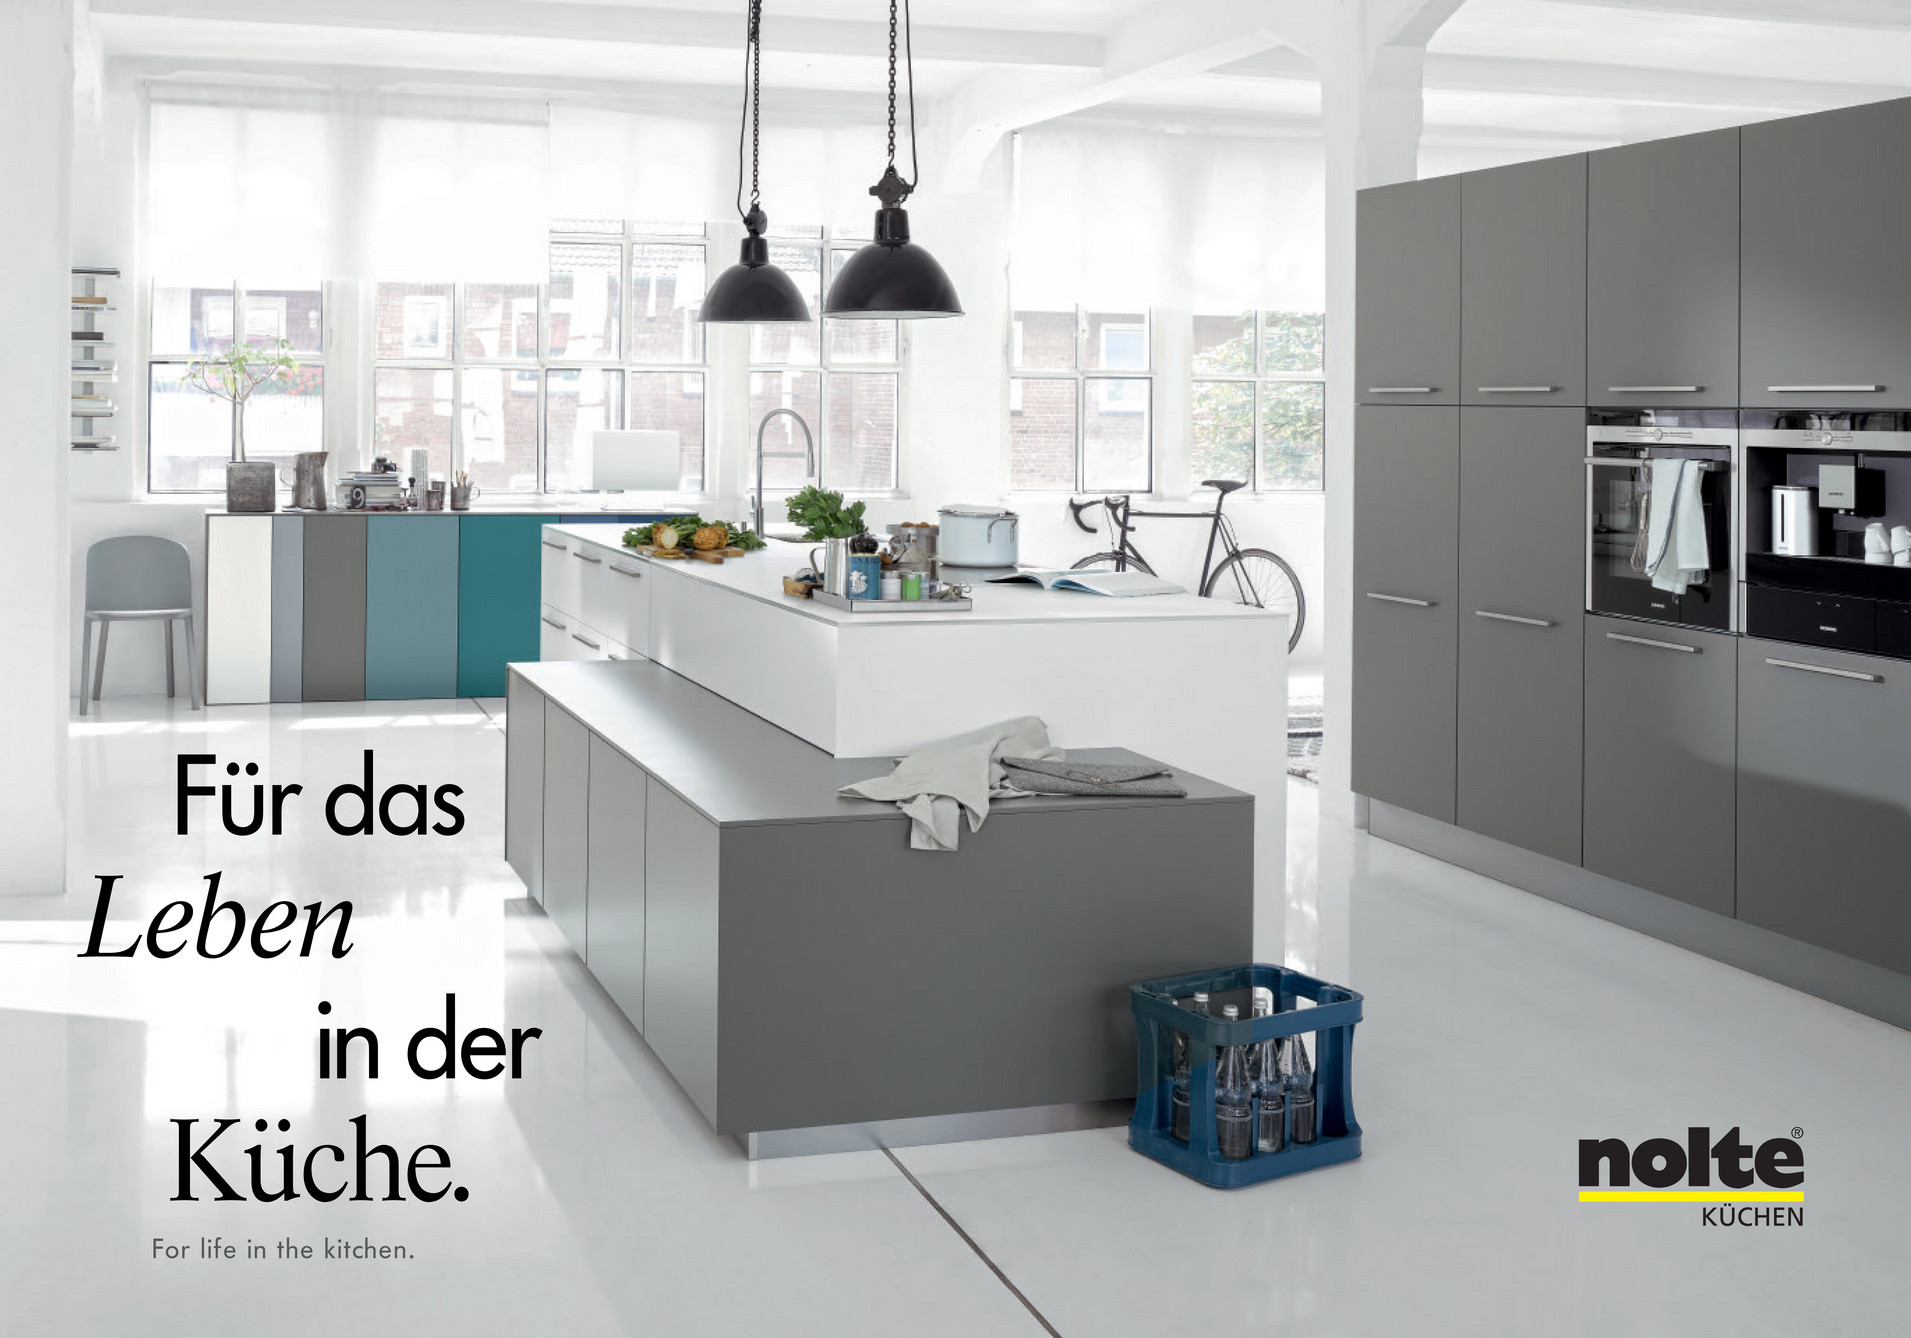 Küche Metallic Front My Publications Nolte Catalog Page 120 121 Created With